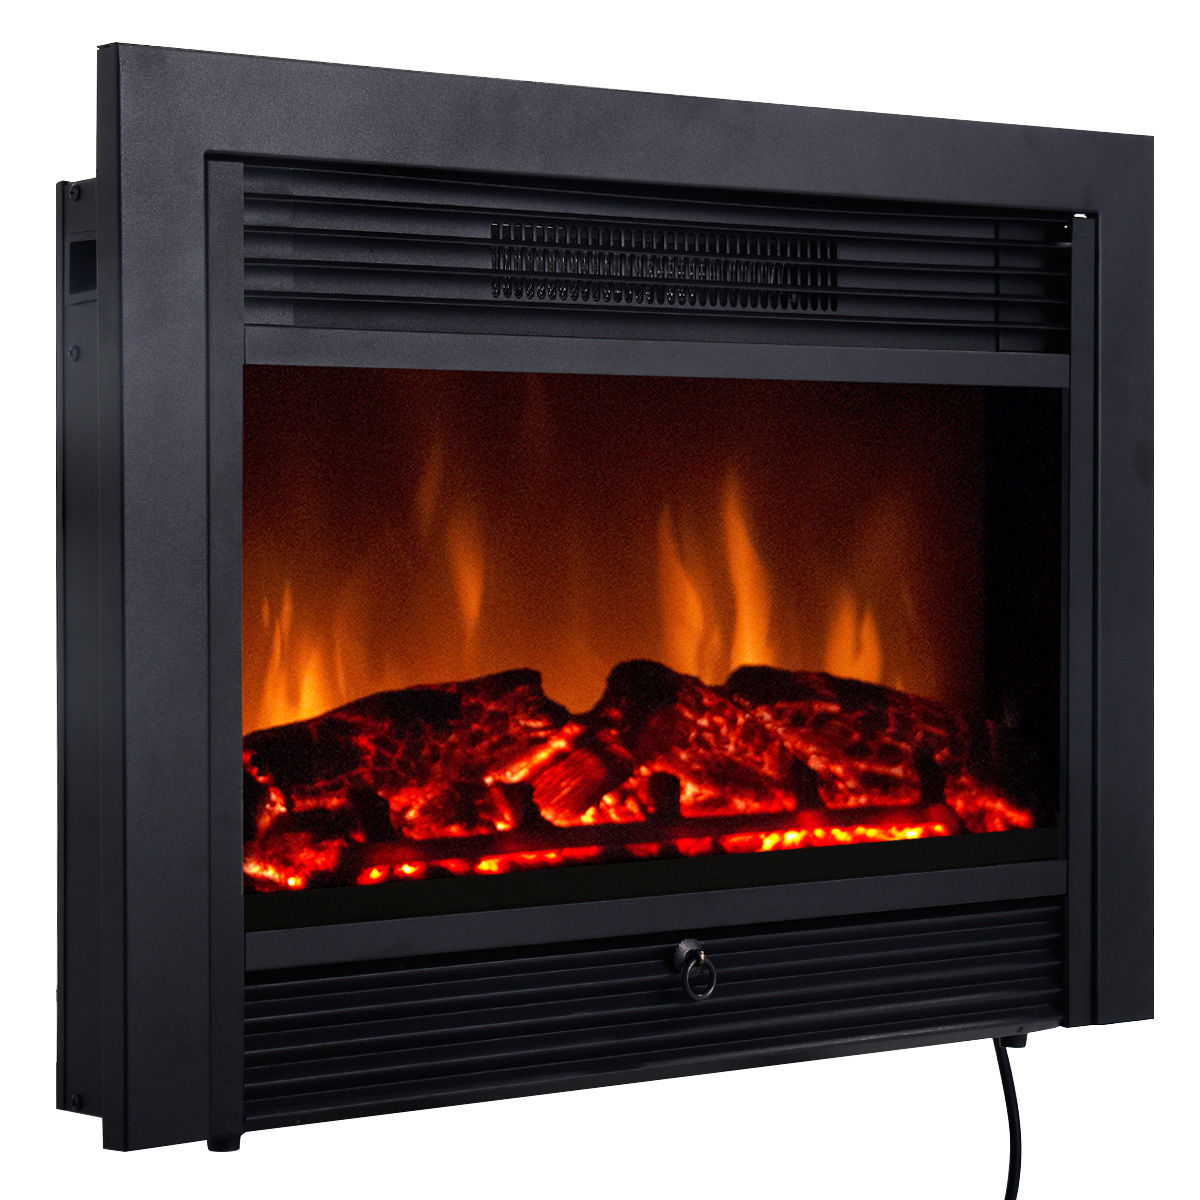 Costway 28.5'' Fireplace Electric Embedded Insert Heater Glass Log Flame Remote Home